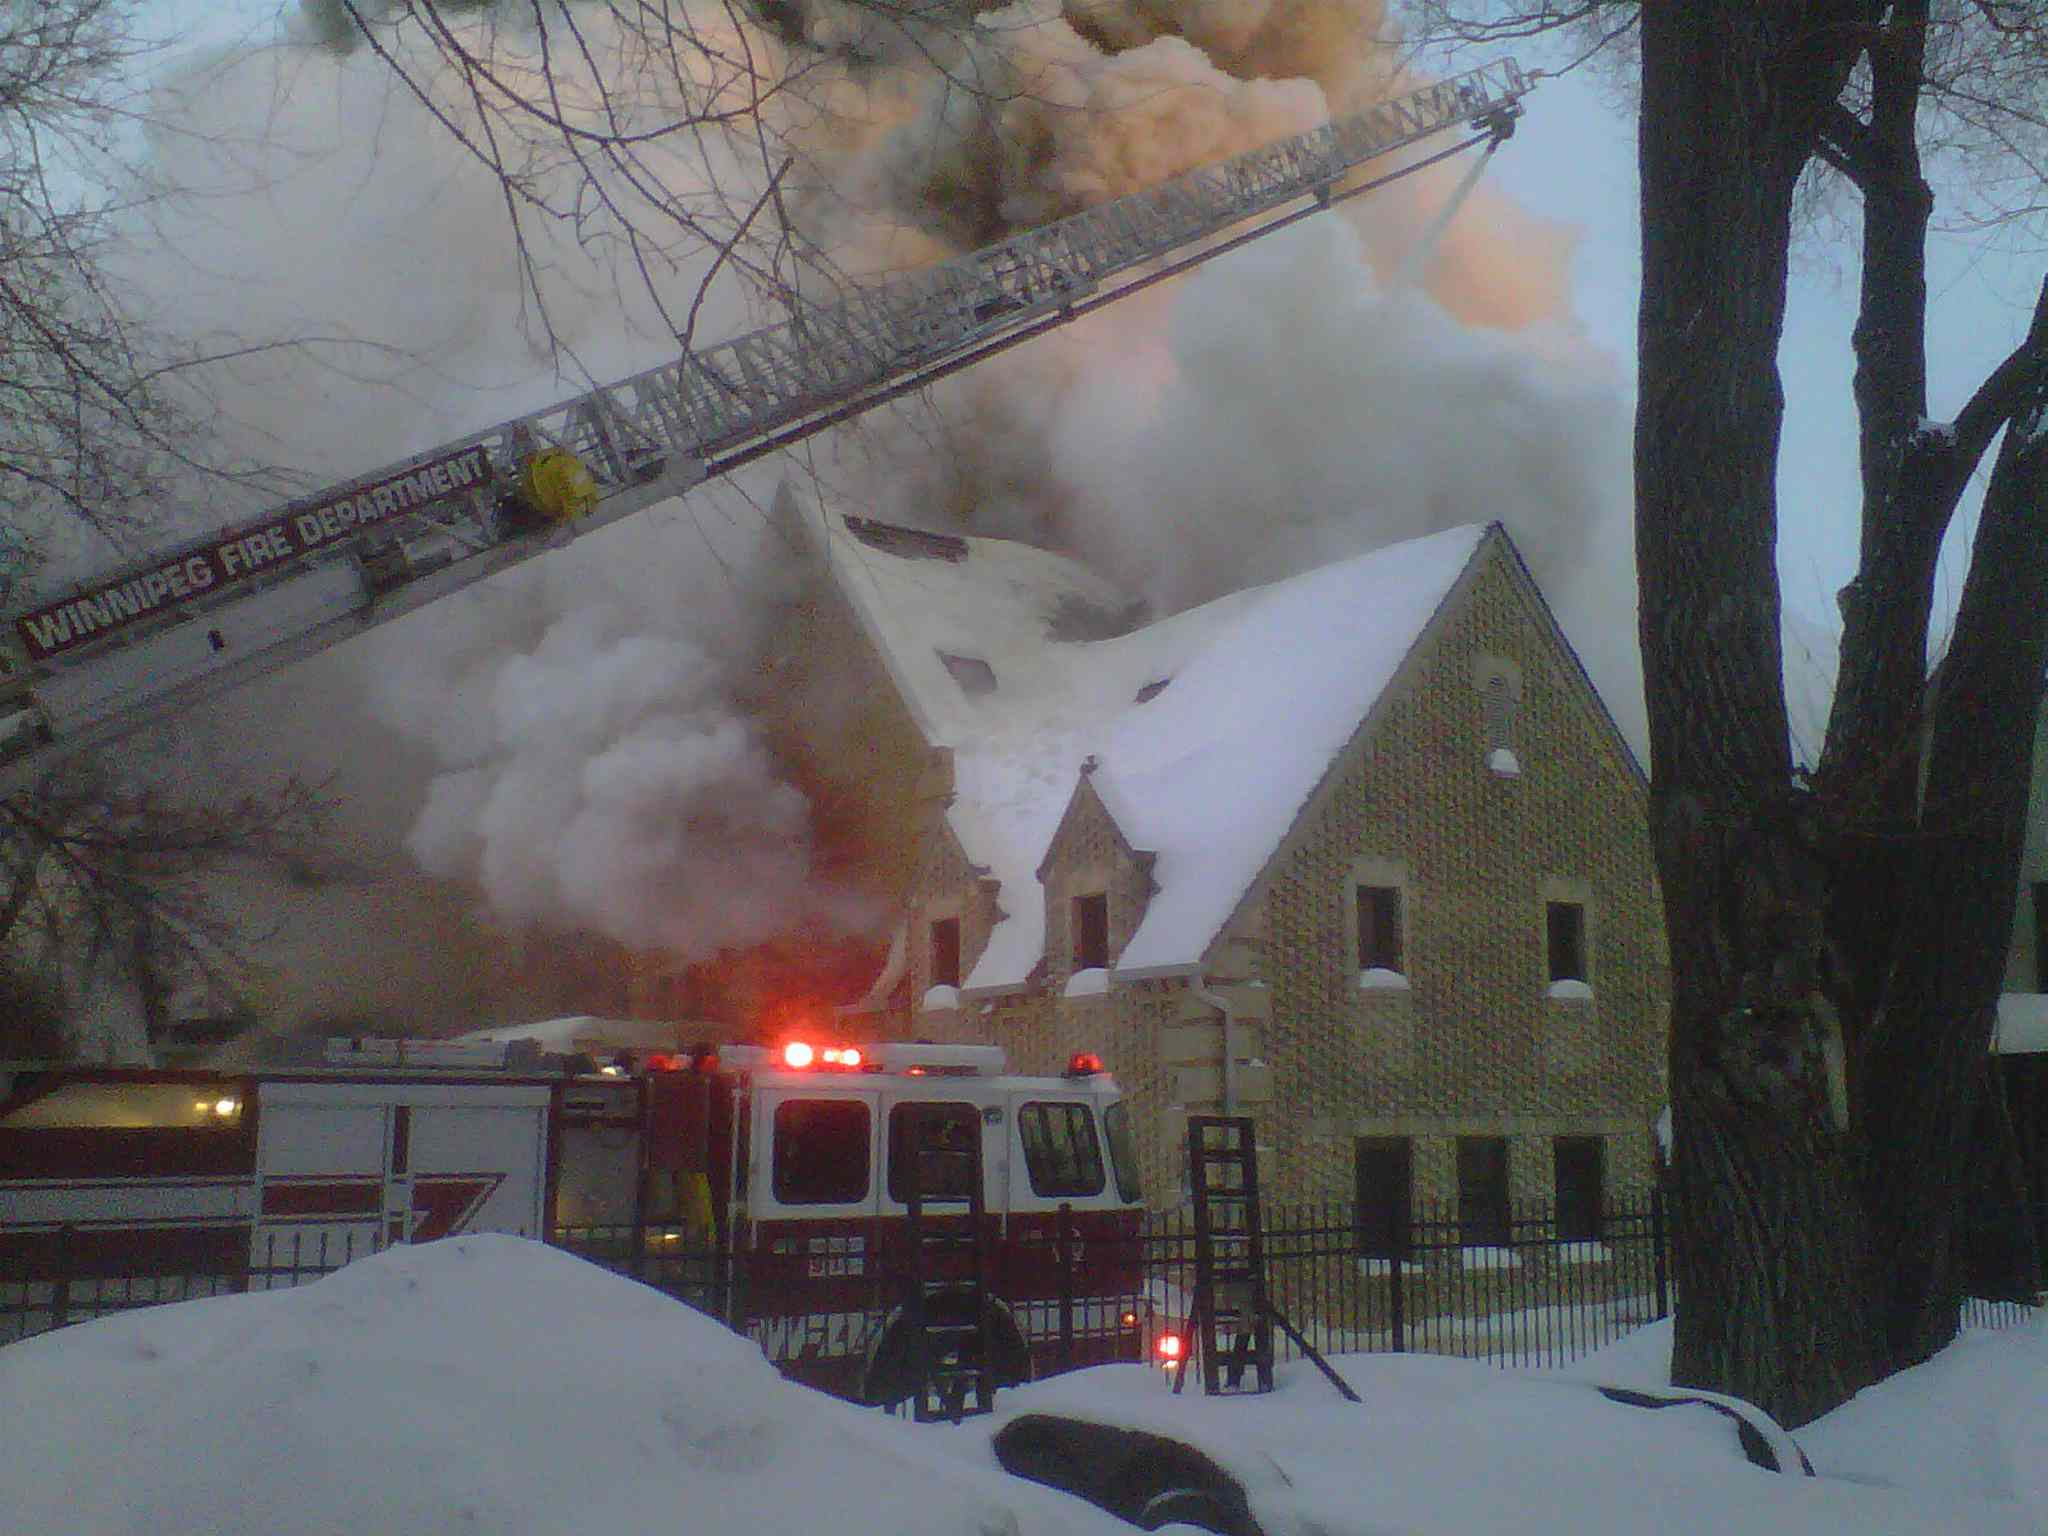 Firefighters battle a blaze at 1021 Wellington Cres. Sunday morning.